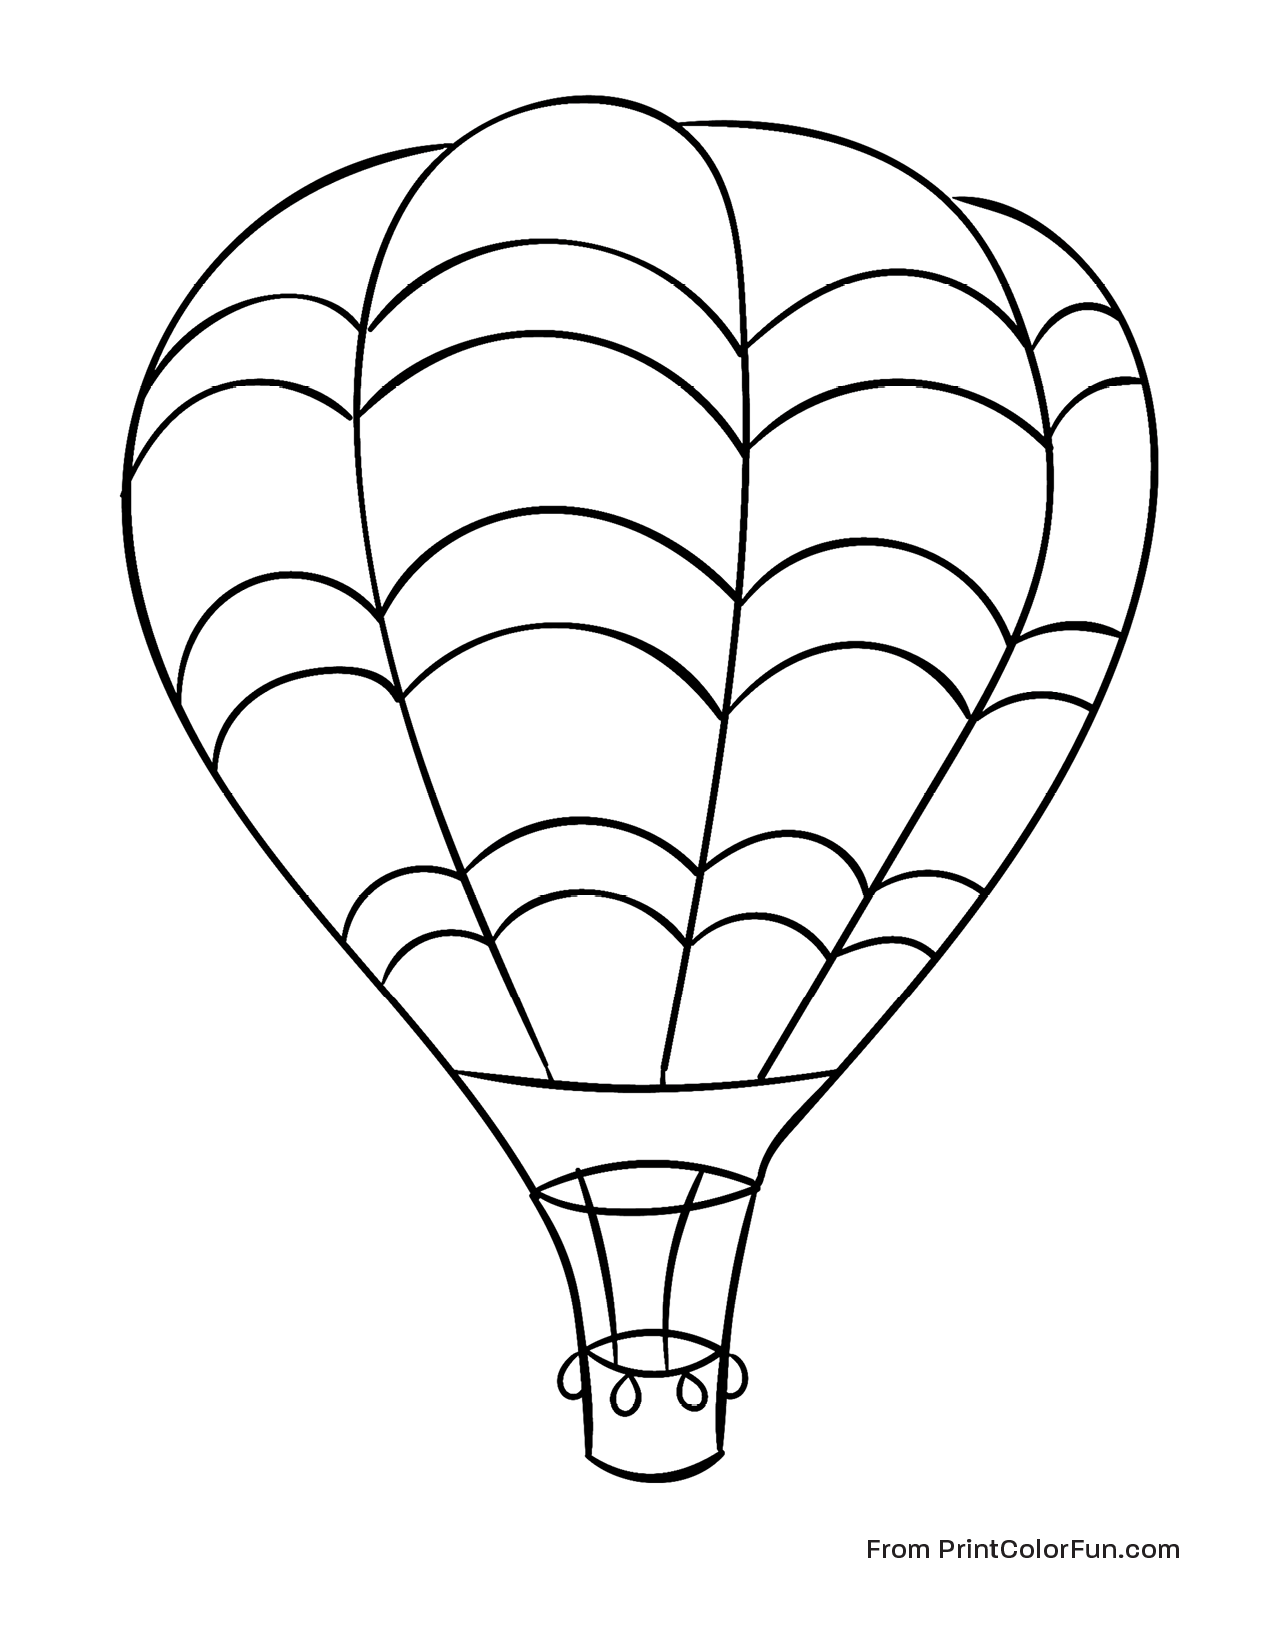 balloon sketch balloon drawing pictures at getdrawings free download sketch balloon